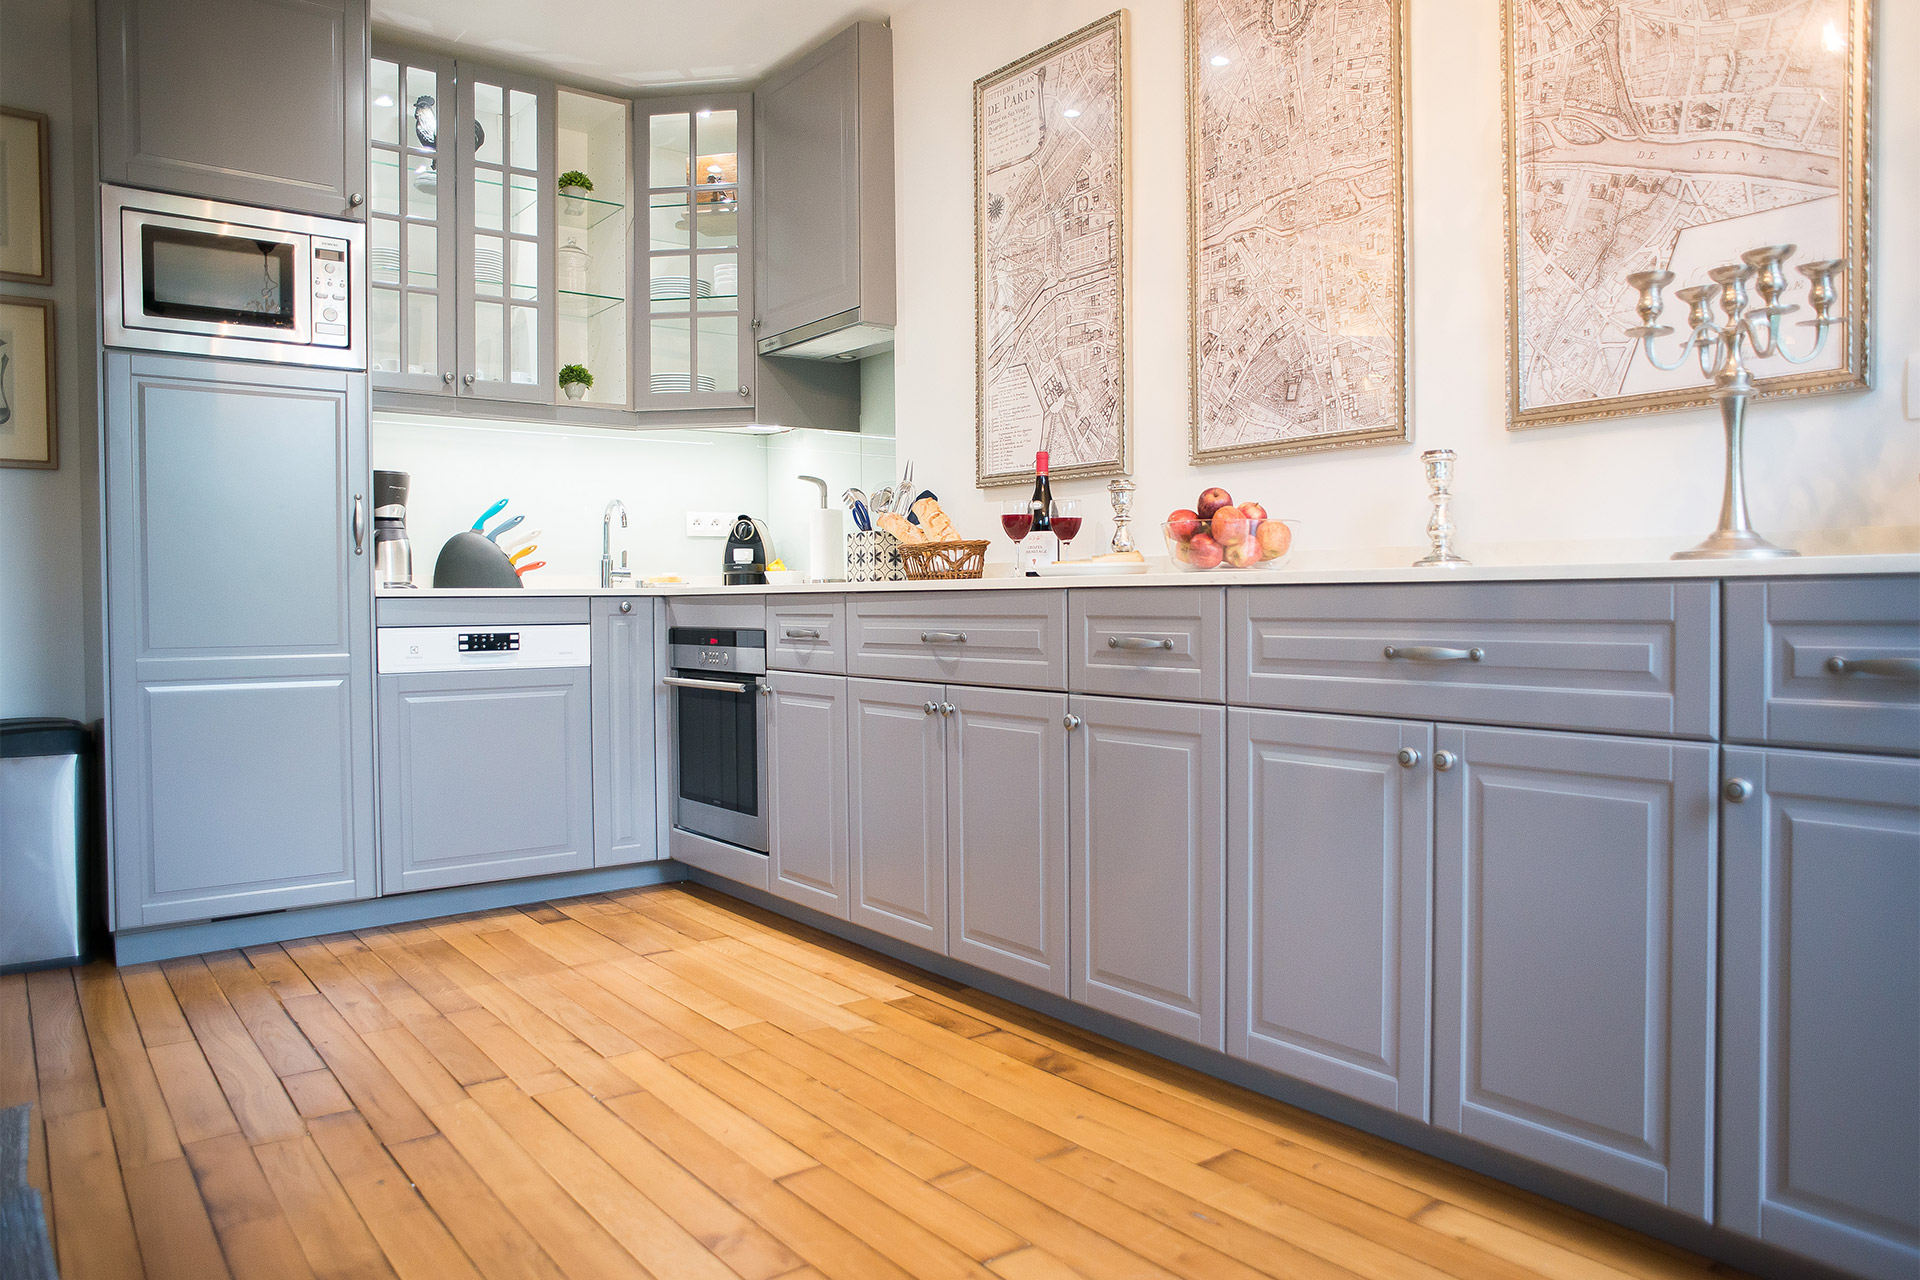 Fully equipped, modern kitchen of the Bergerac vacation rental offered by Paris Perfect